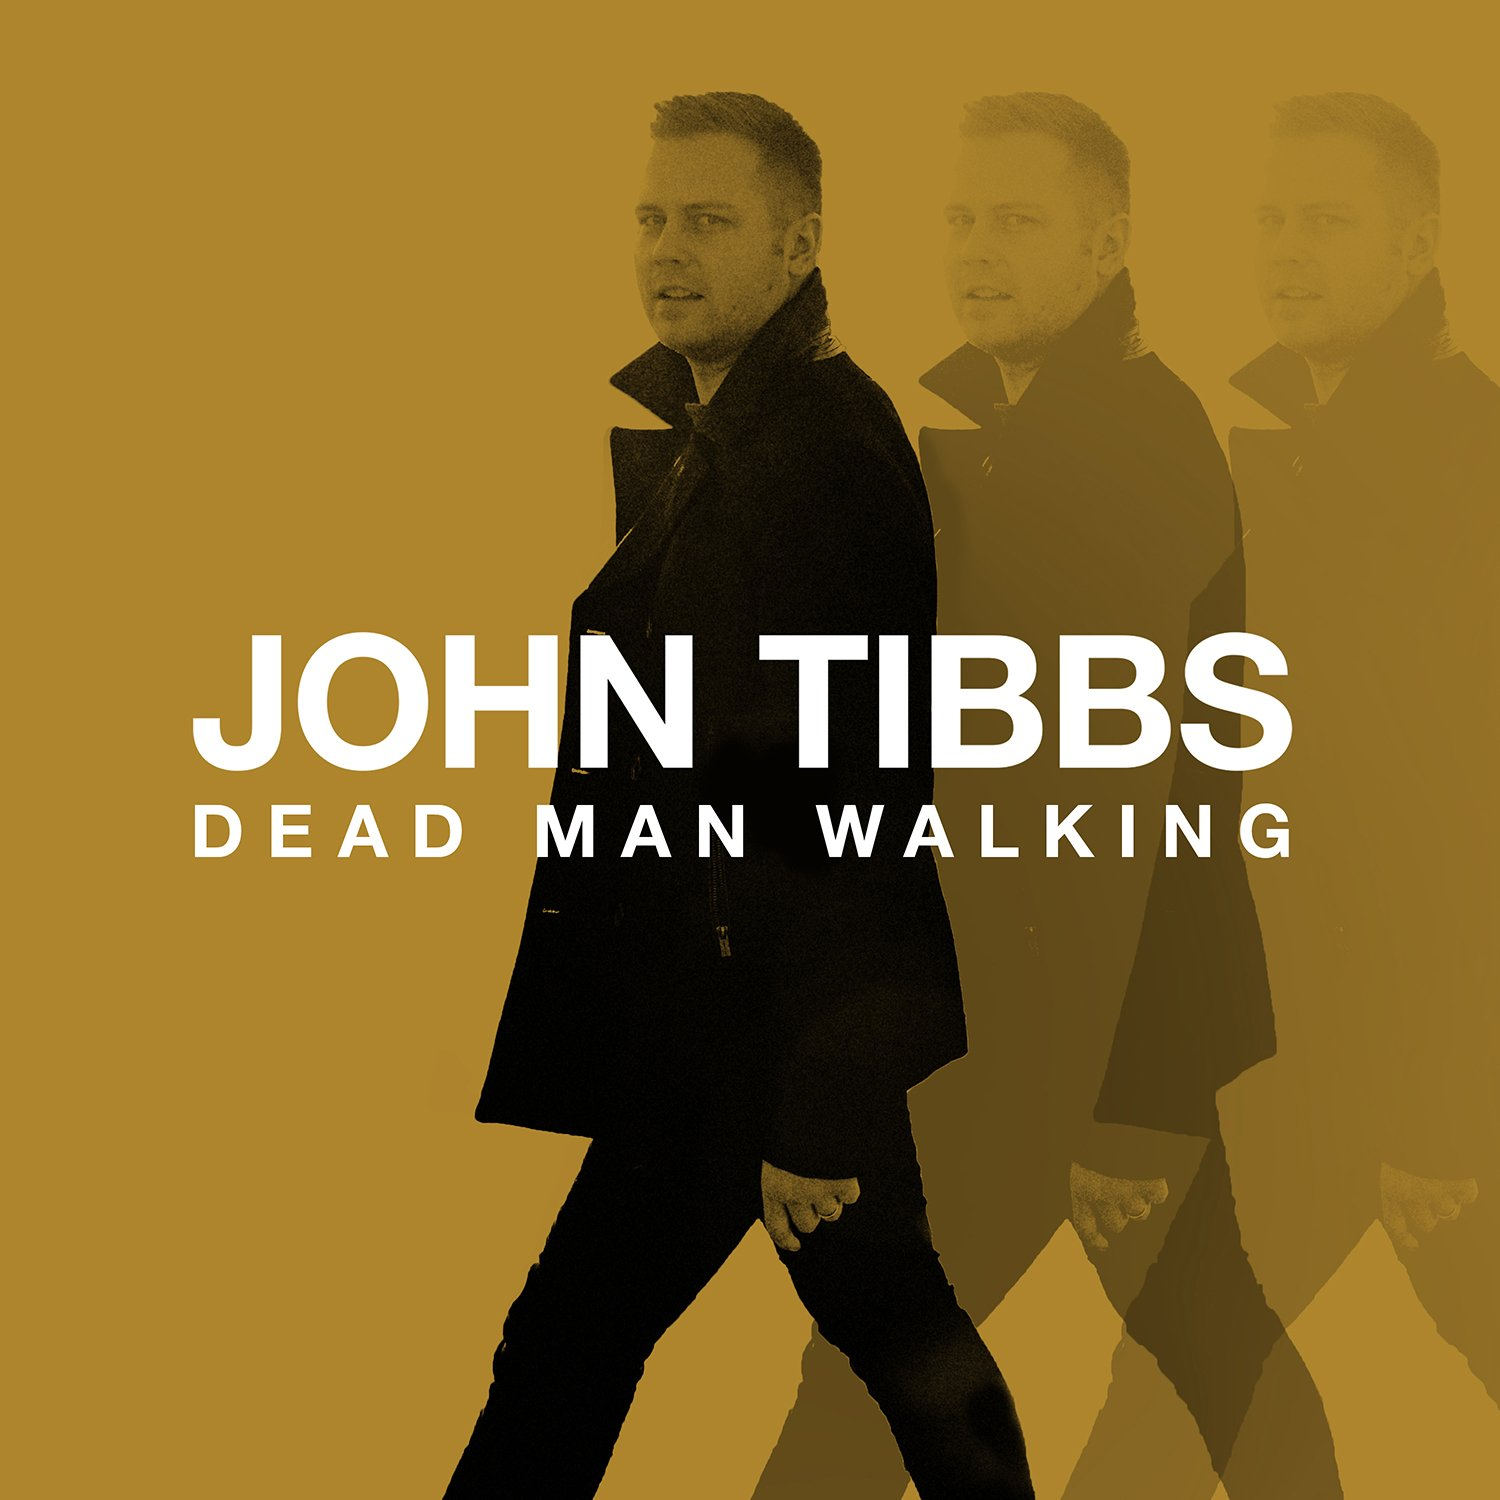 "Dead Man Walking - John Tibbs ft. Ellie Holcomb - ""Your love, Your love, it set me freeOh no guilt, no shame, got a hold on meYour love, Your love, it opened my eyesI was a dead man walking 'til Lord"""